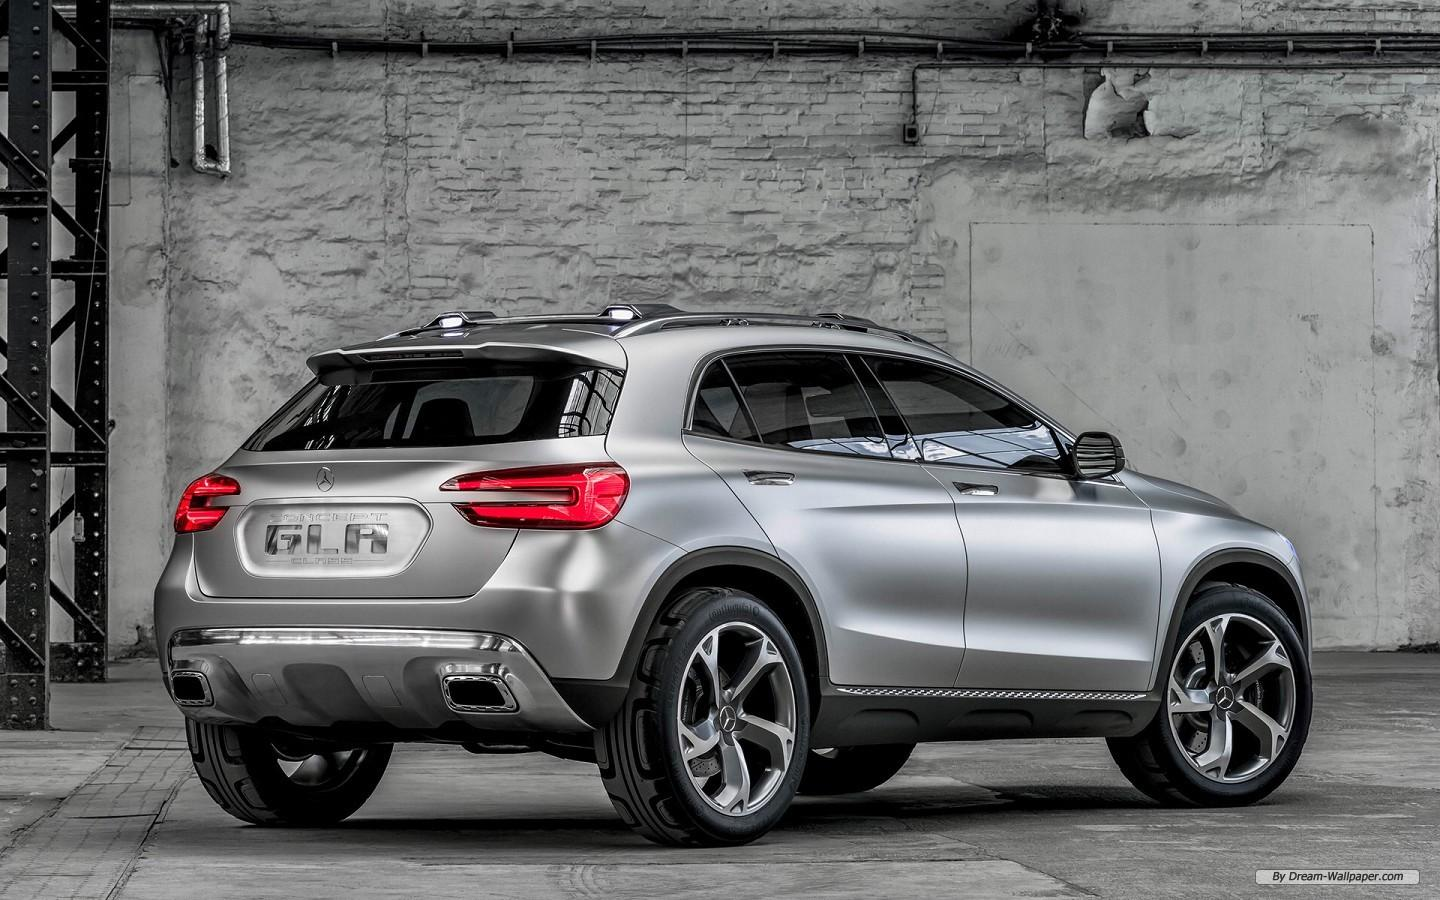 Free Wallpaper - Free Auto wallpaper - Mercedes-Benz GLA wallpaper ...